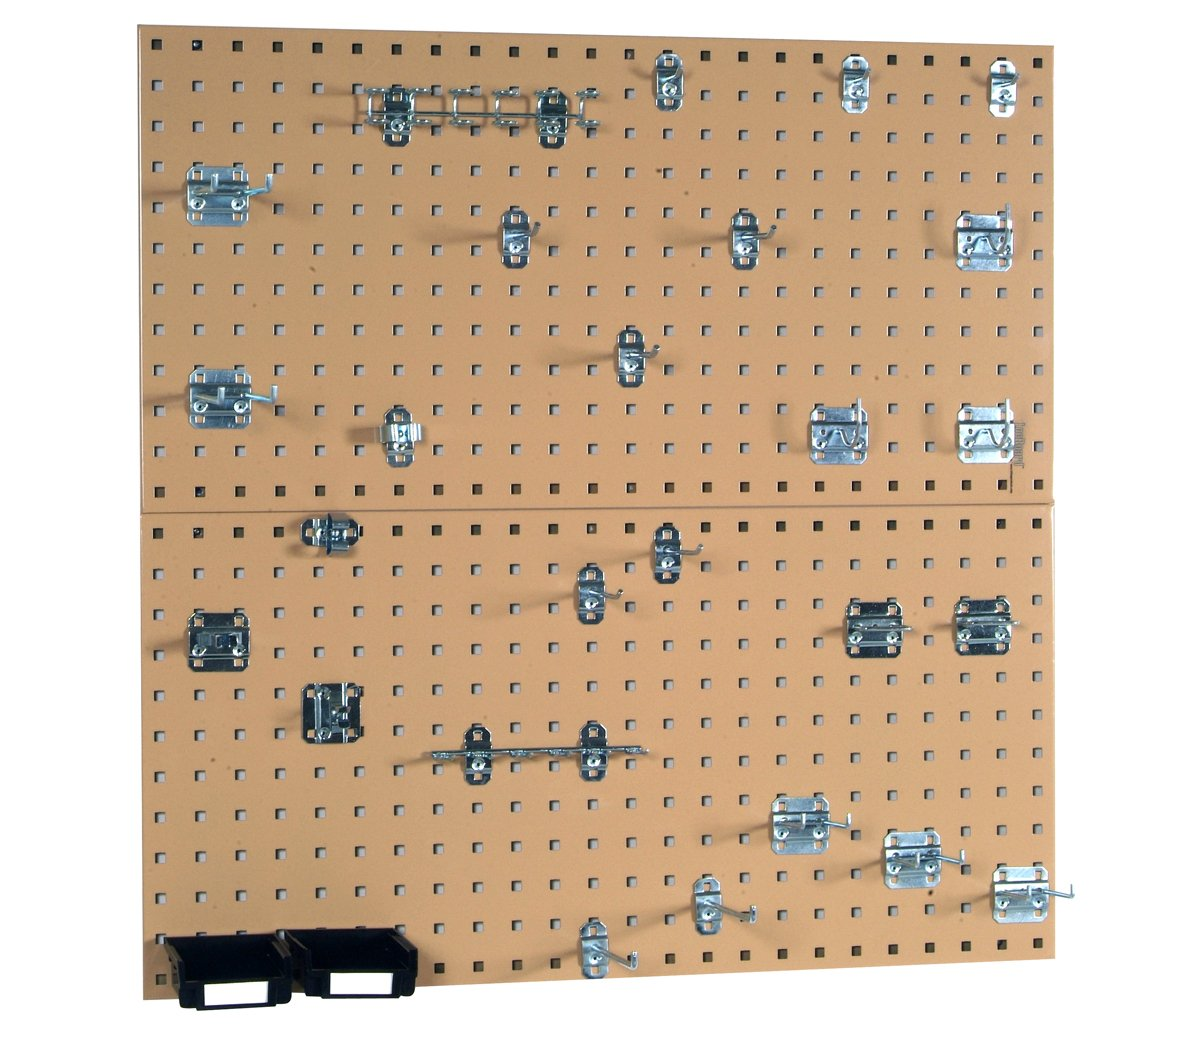 Triton Products Locking Pegboard Hooks LB18-TKit (2) 18 In. W x 36 In. H x 9/16 In. D Tan Steel Square Hole Pegboards with 30 pc. LocHook Assortment & Hanging Bin System, 18'' x 36'' x 9/16''